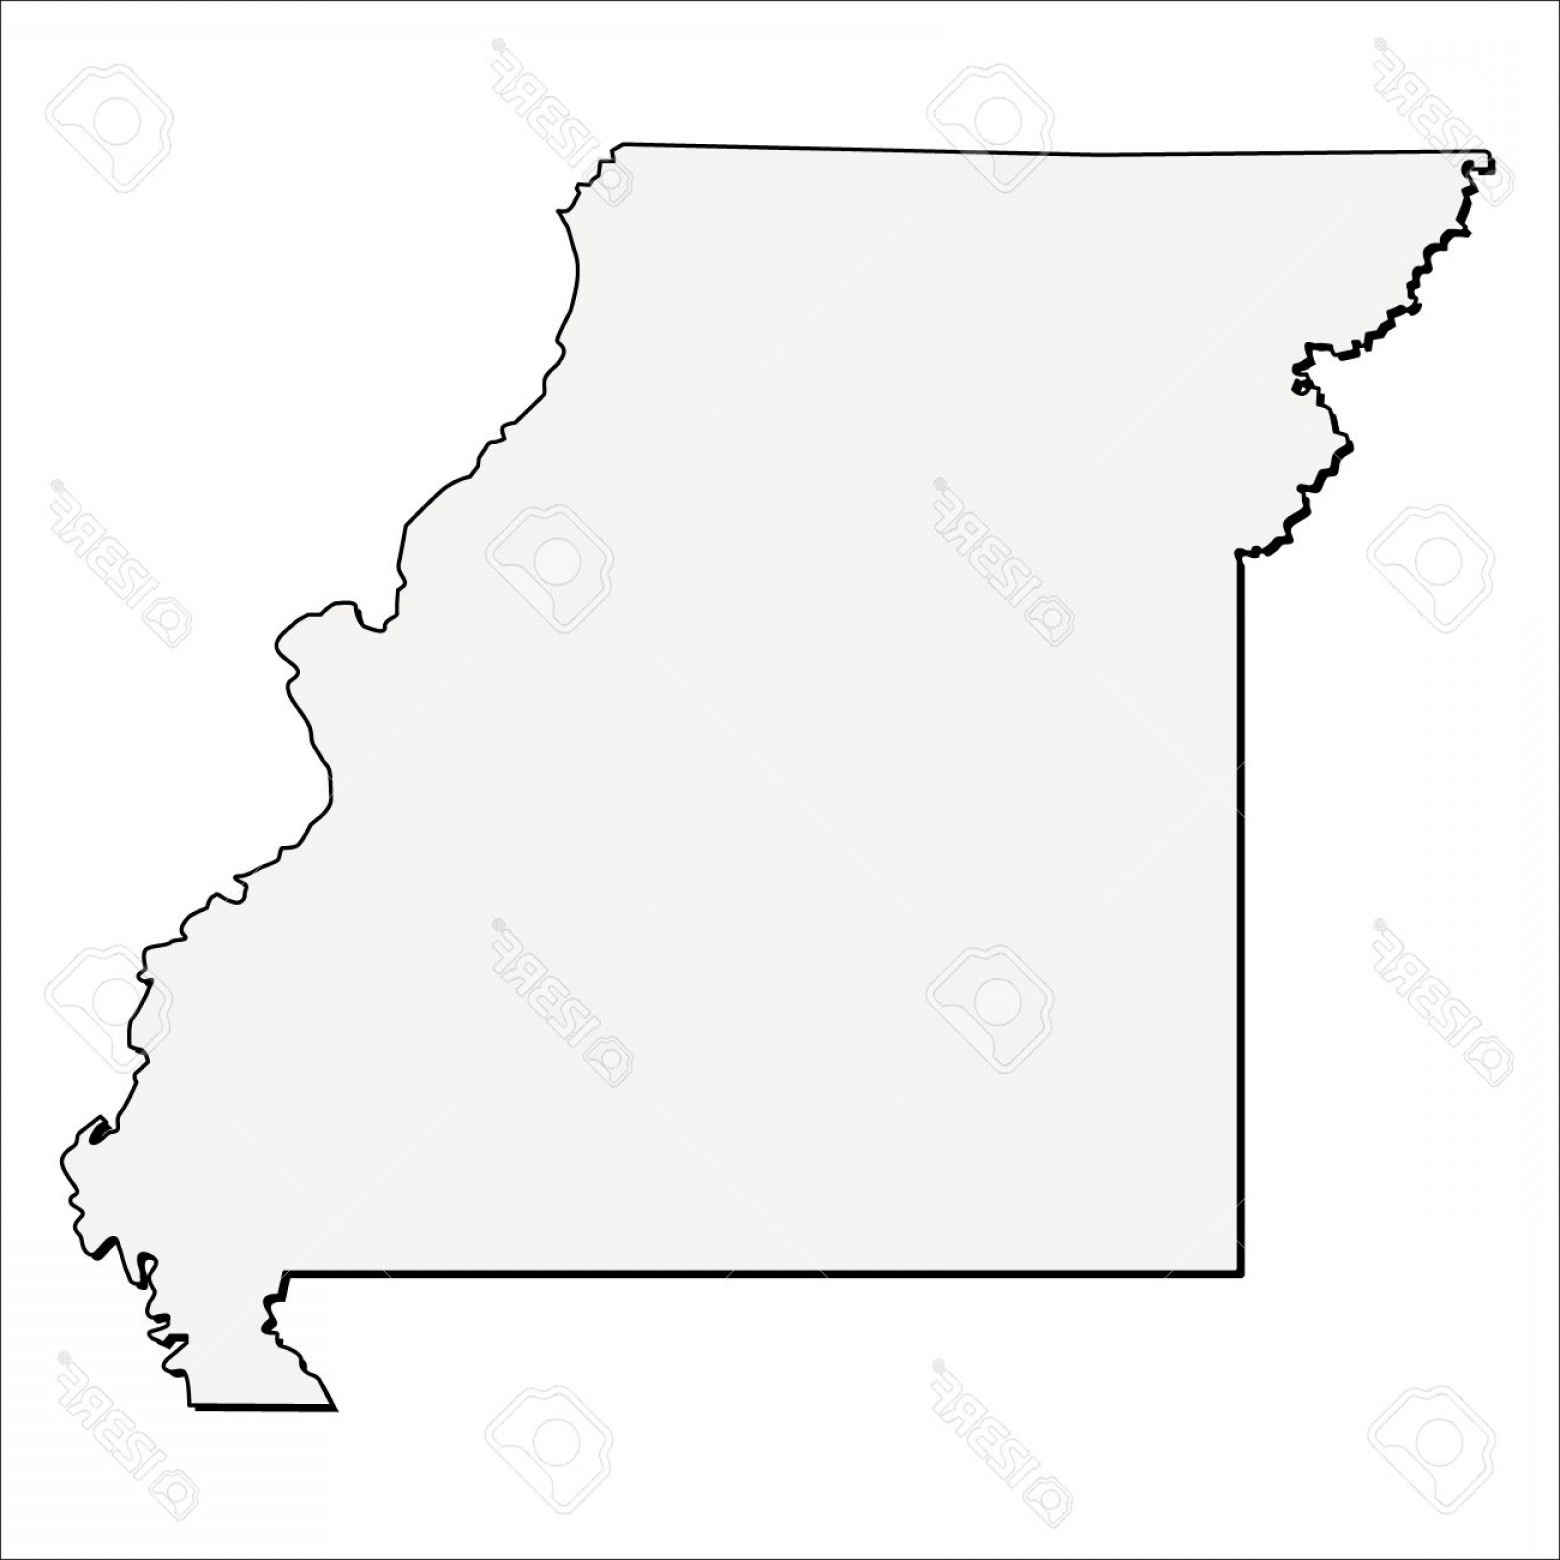 Arizona State Outline Vector: Photostock Vector Vector Missouri State D Outline Map